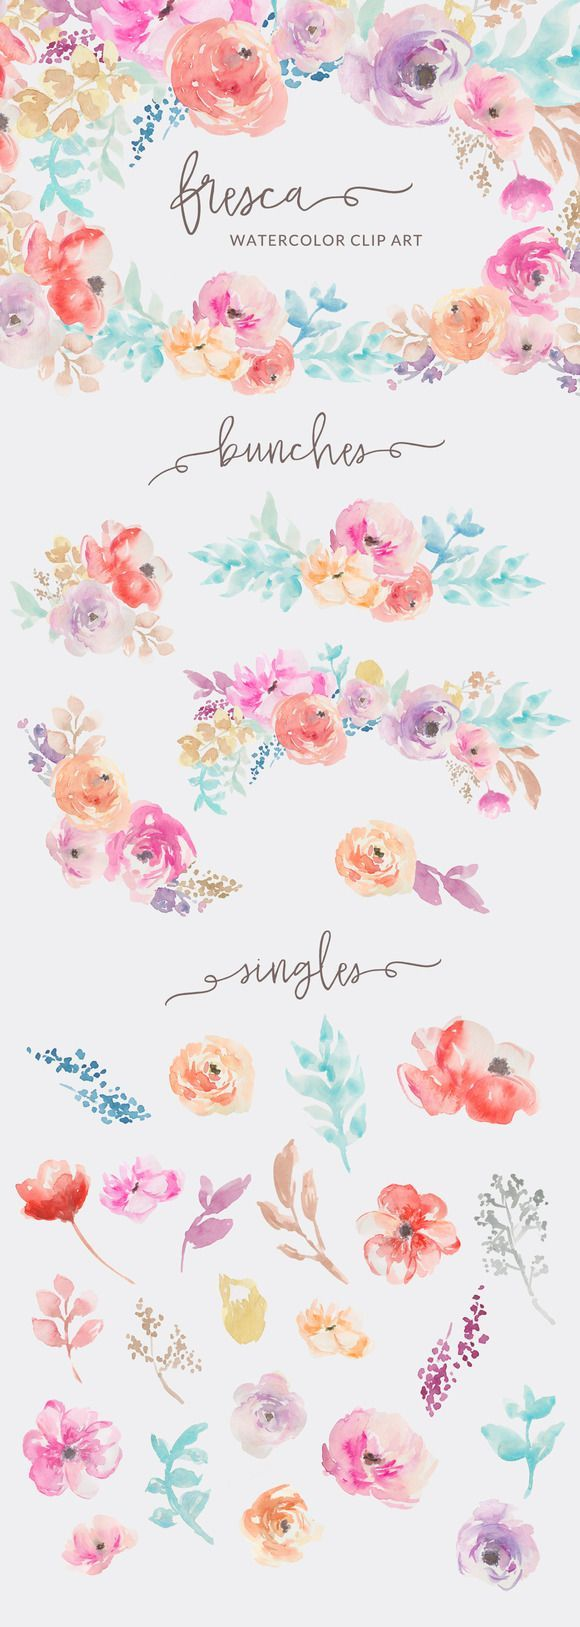 Fresca- Watercolor Flower Clip Art